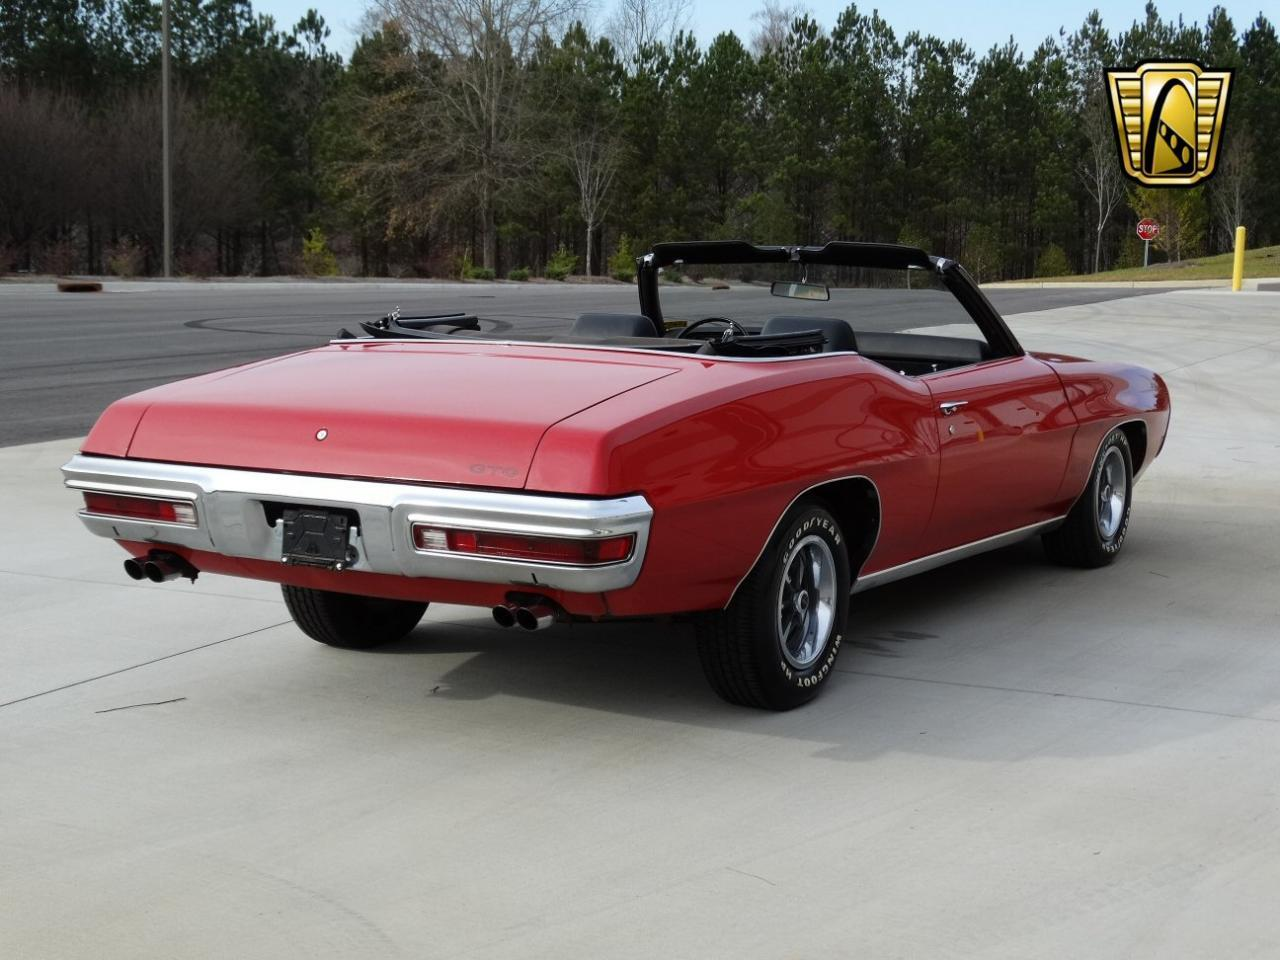 Large Picture of '70 Pontiac GTO located in Alpharetta Georgia - $71,000.00 Offered by Gateway Classic Cars - Atlanta - KF5T